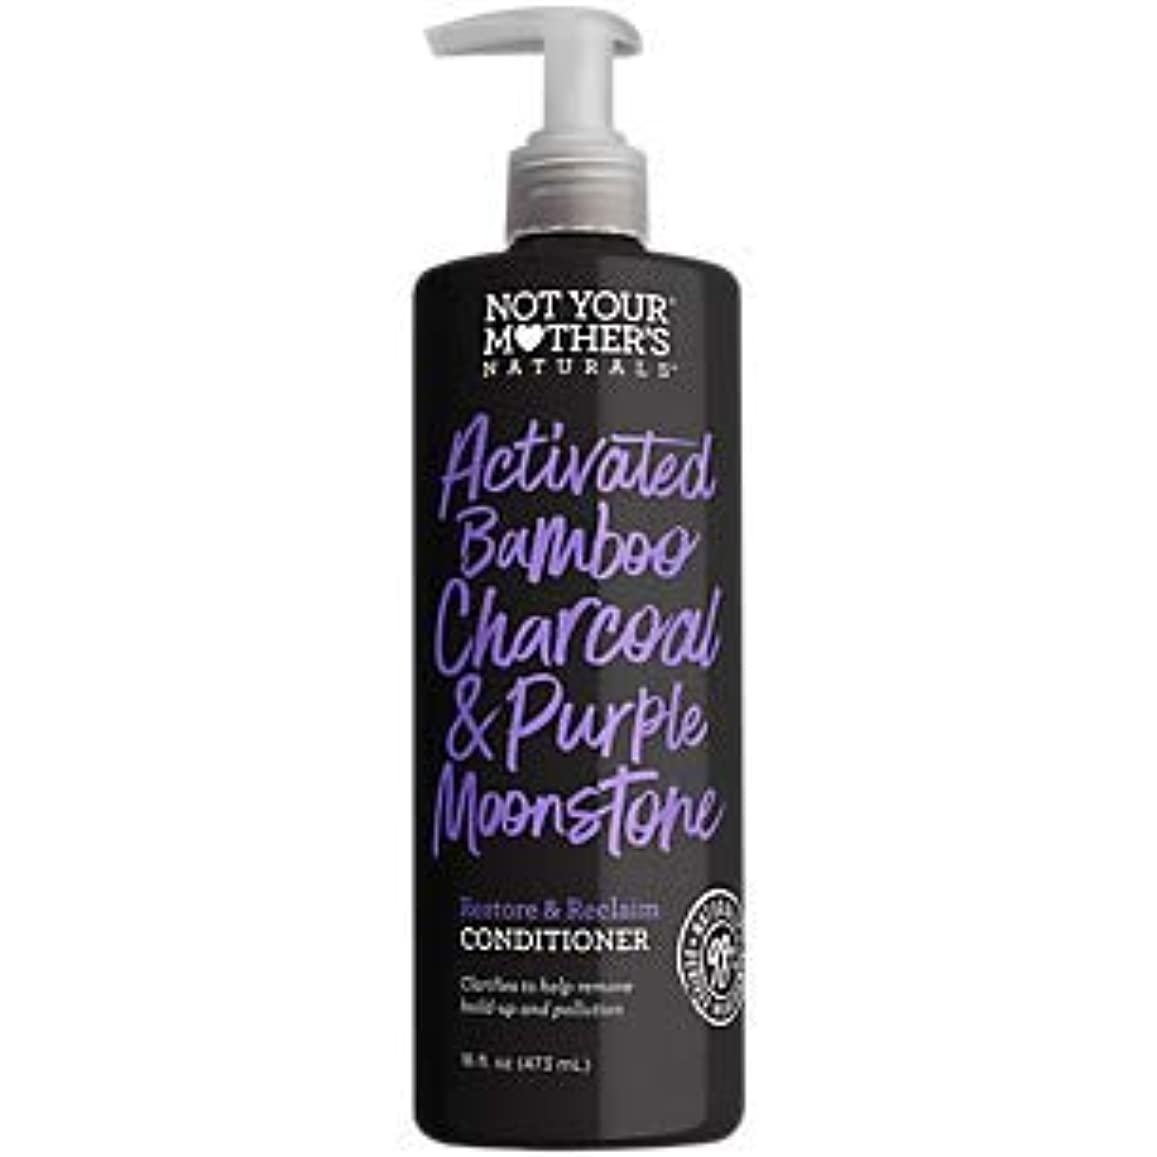 可動式晩餐速報NOT YOUR MOTHER'S Activated Bamboo Charcoal & Purple Moonstone Conditioner, 16 FZ 141[並行輸入]